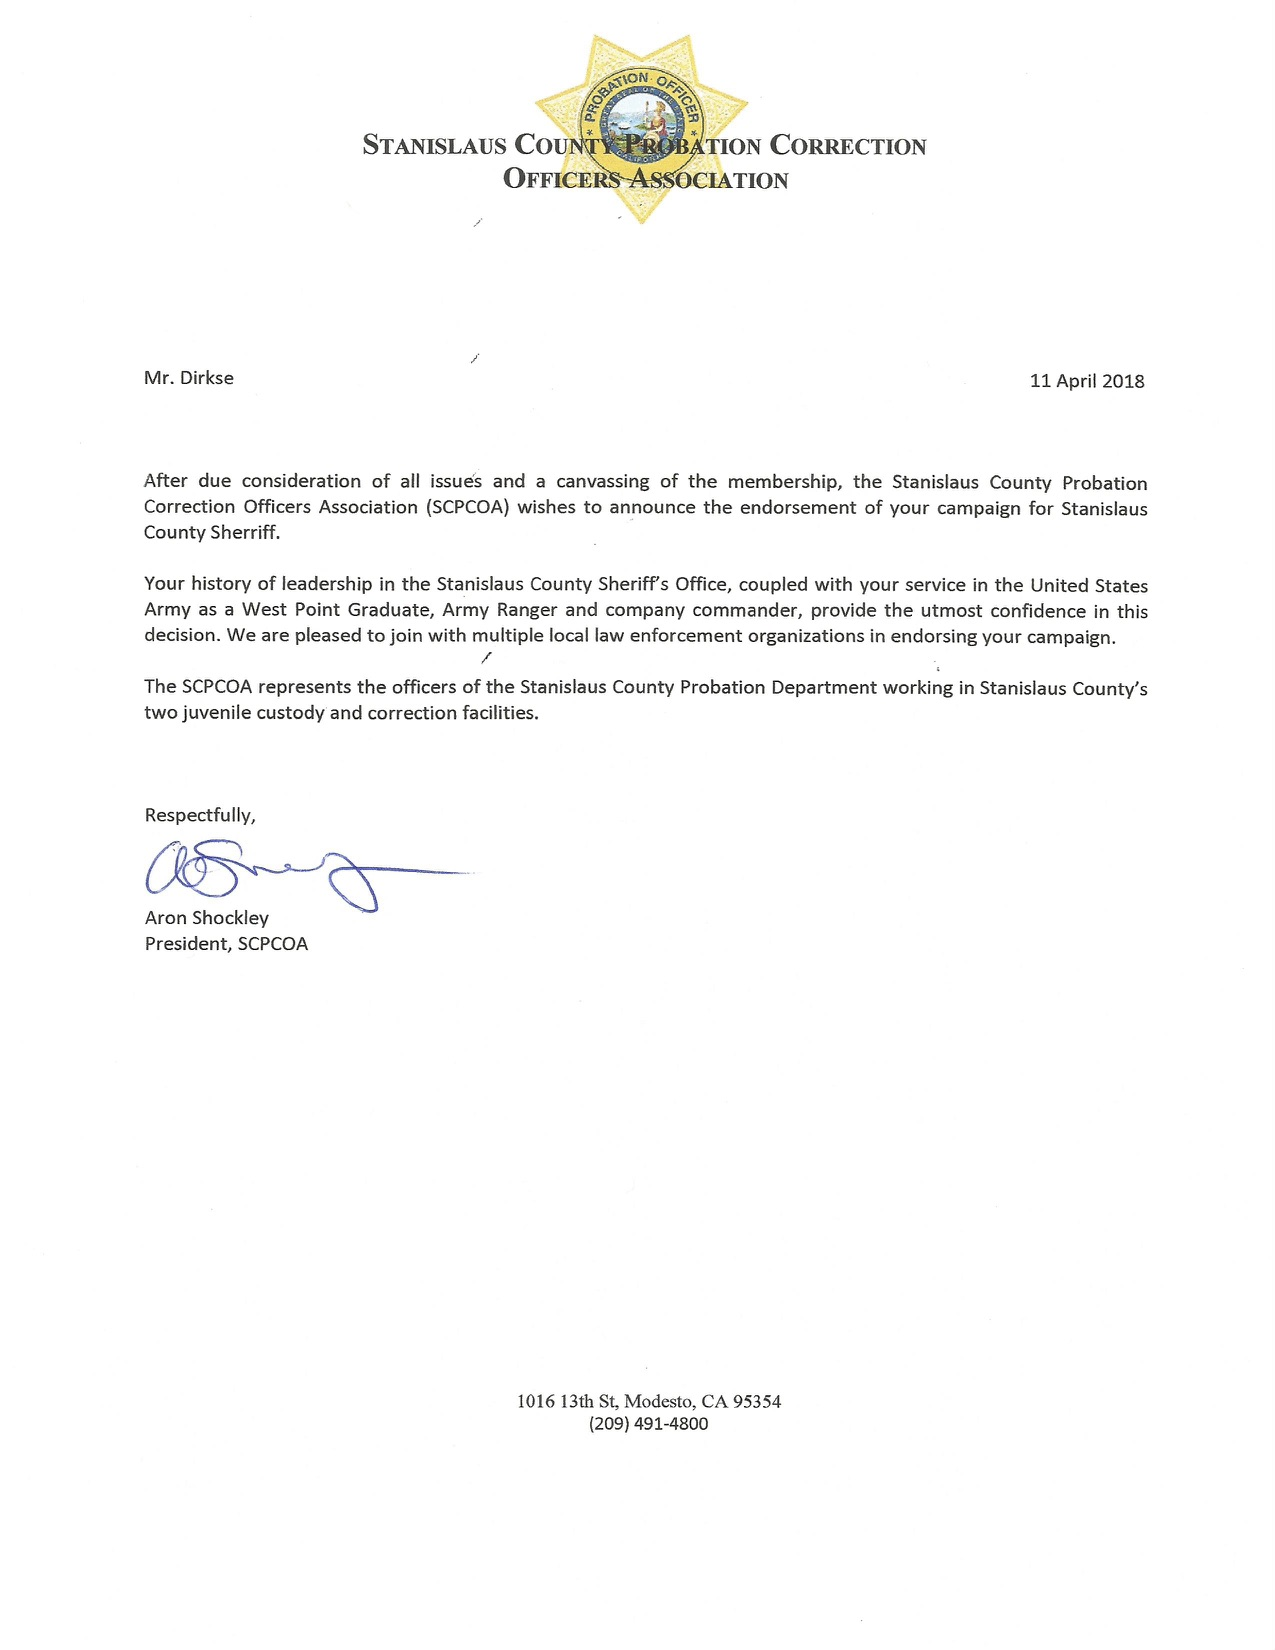 Stanislaus County Probation Correction Officers Association letter